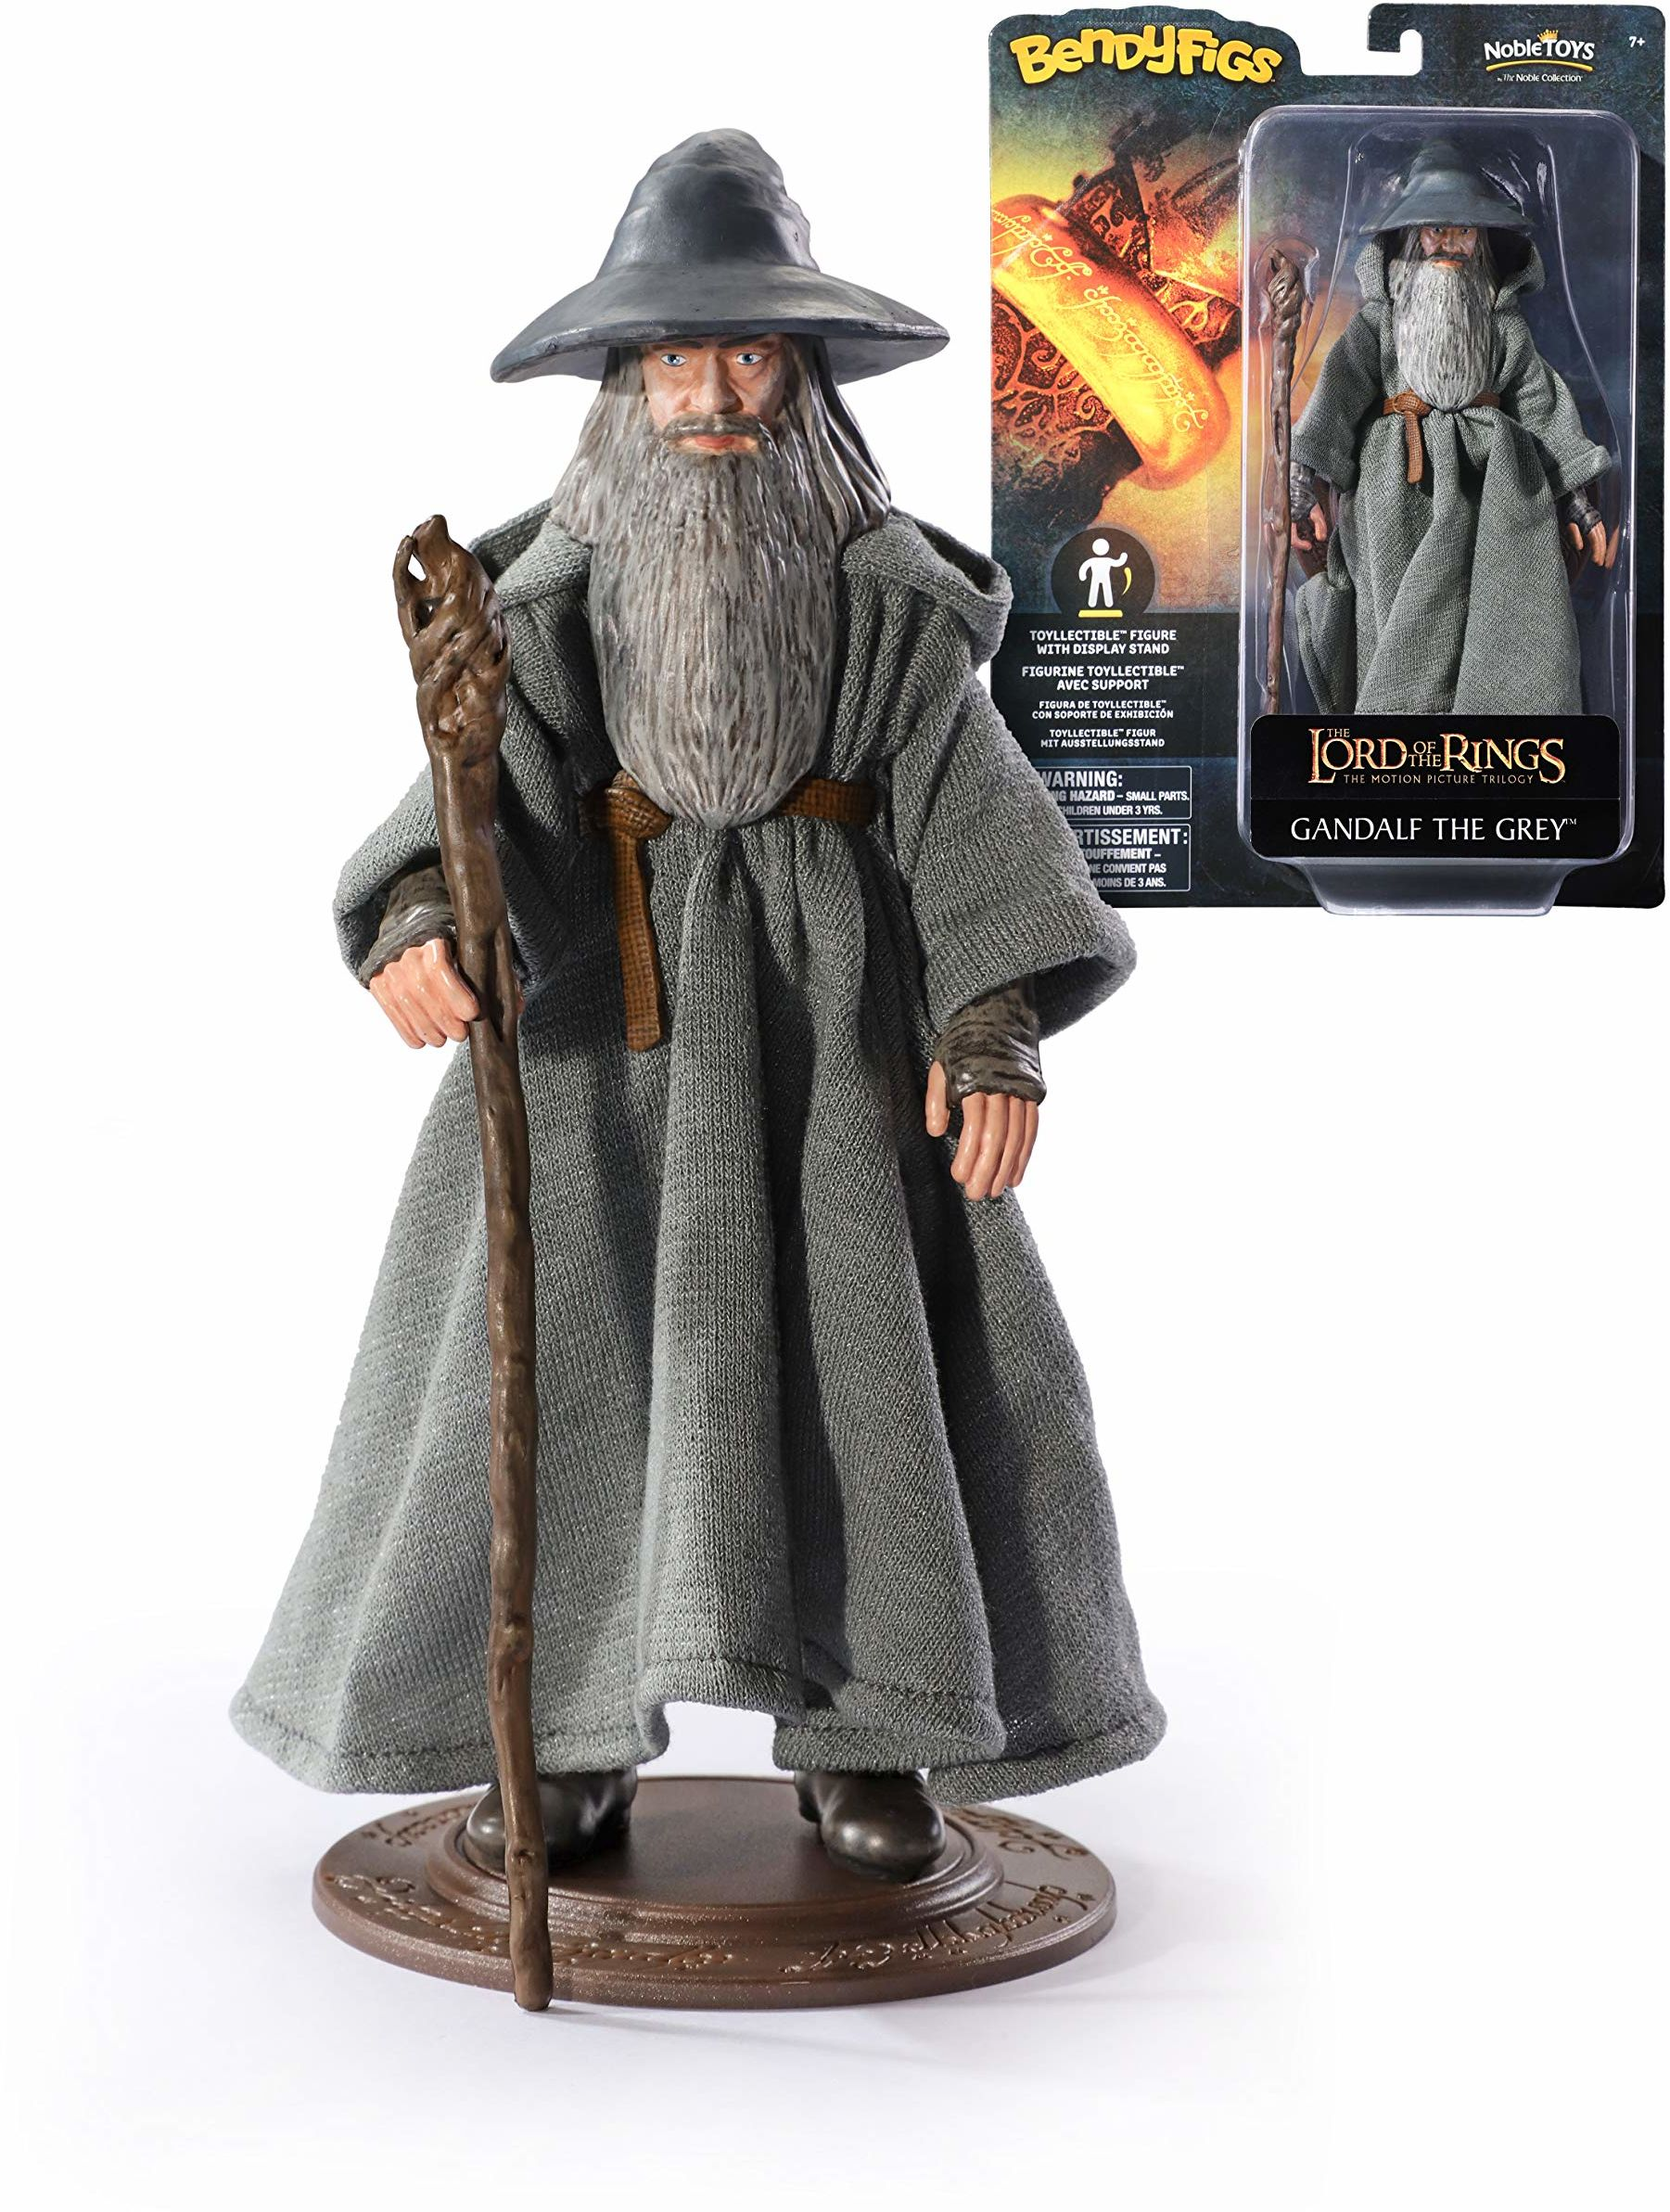 The Noble Collection Bendyfigs Gandalf Officially Licensed 19cm Lord Of The Rings Bendable Toy Posable Collectable Doll Figures With Stand - For Kids & Adults